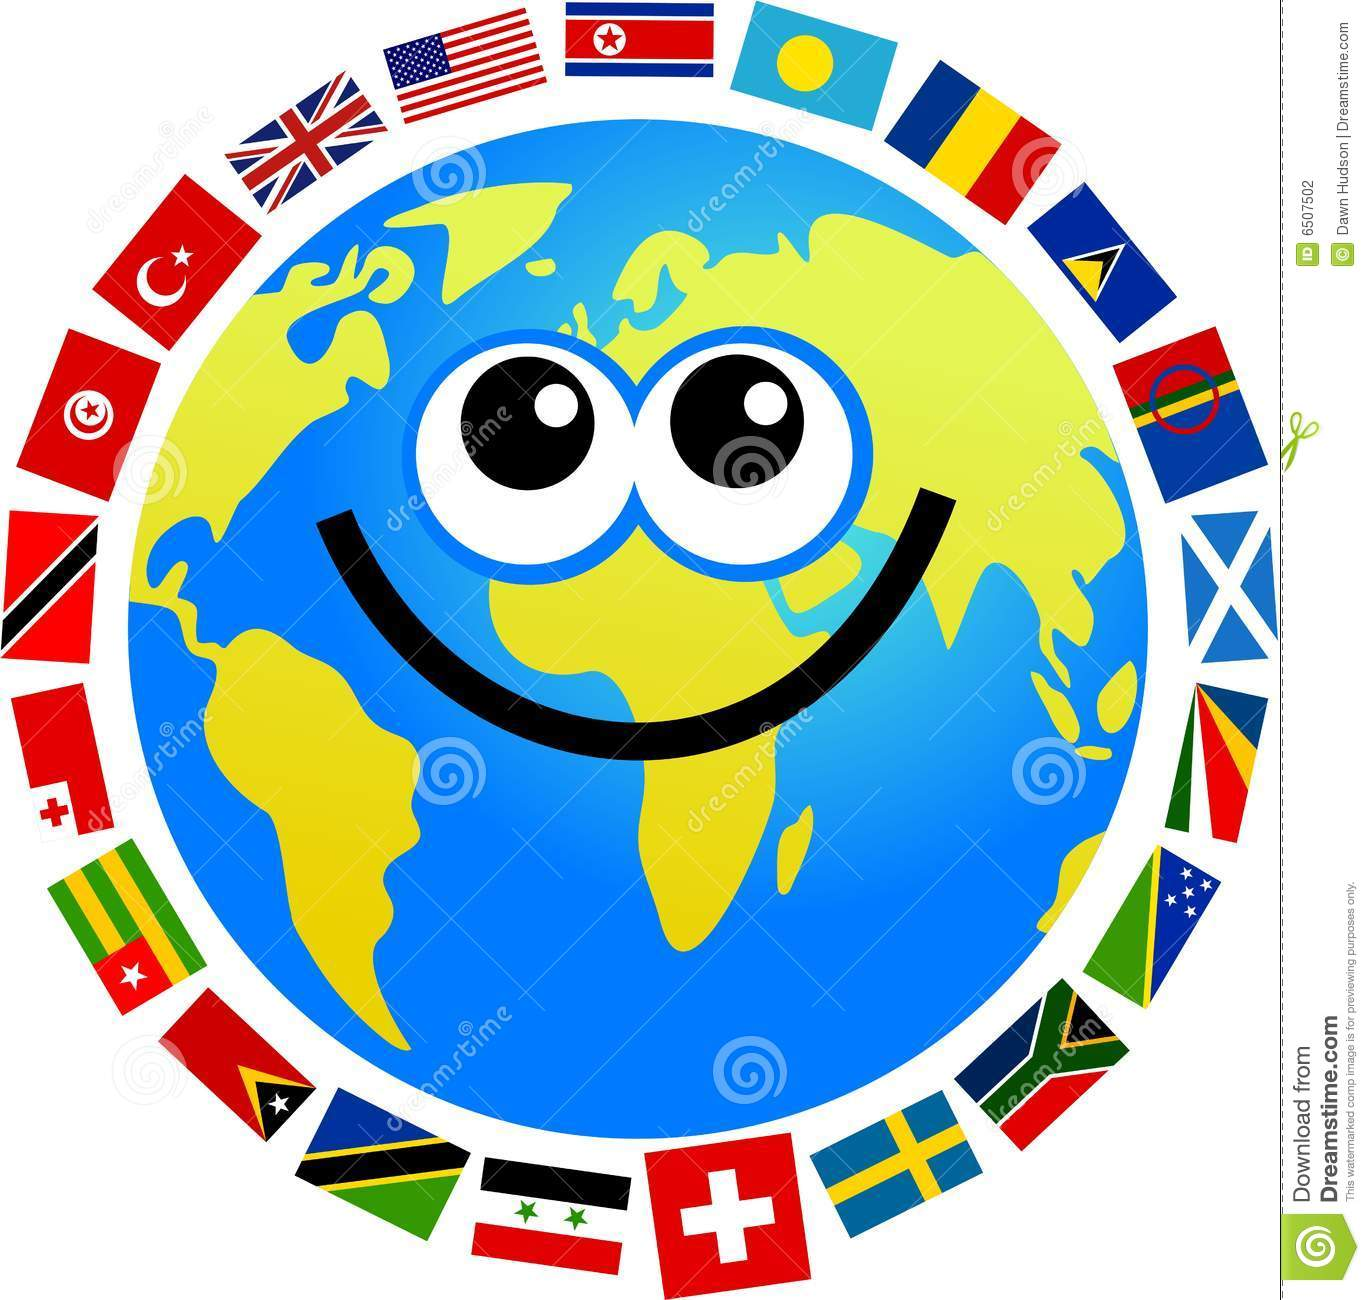 Happy cartoon world globe surrounded by flags.